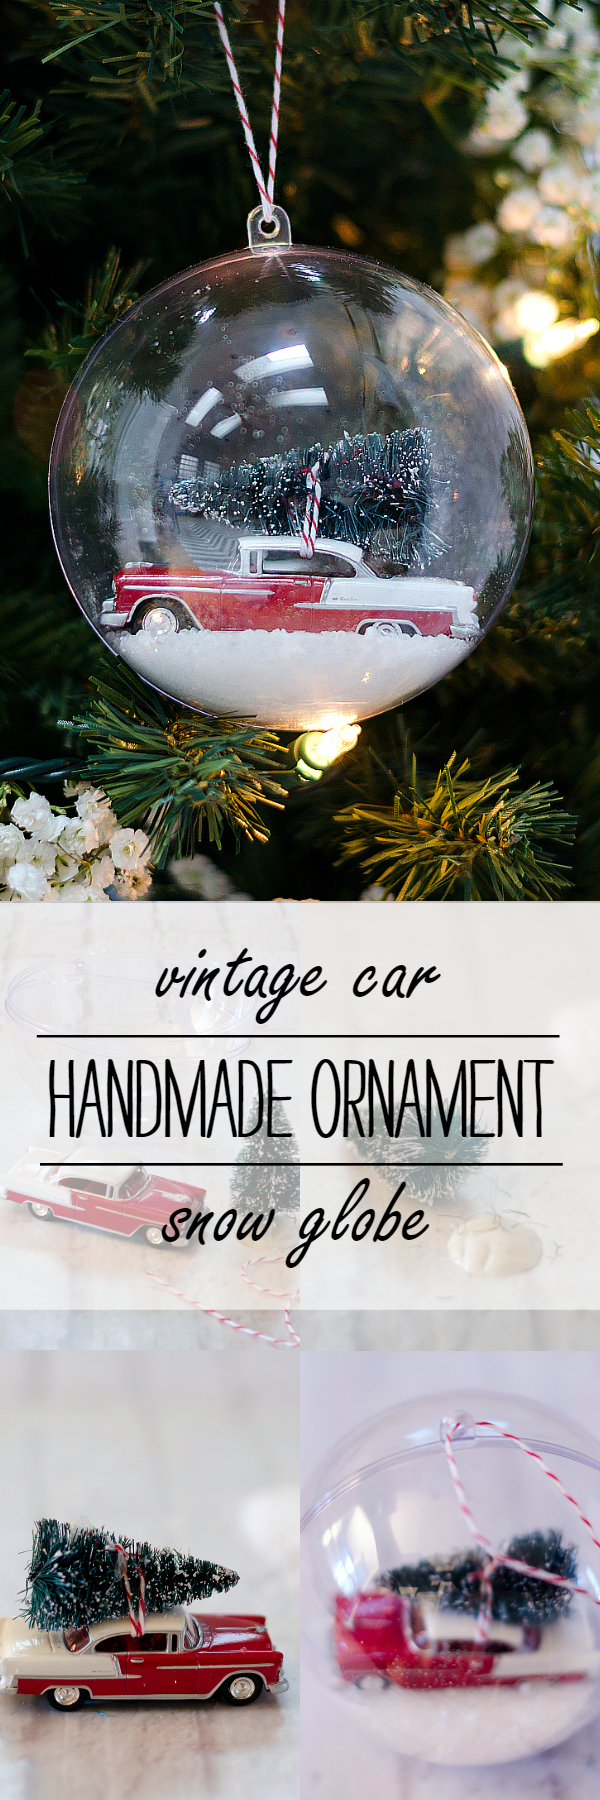 Vintage Car Handmade Ornament for Christmas